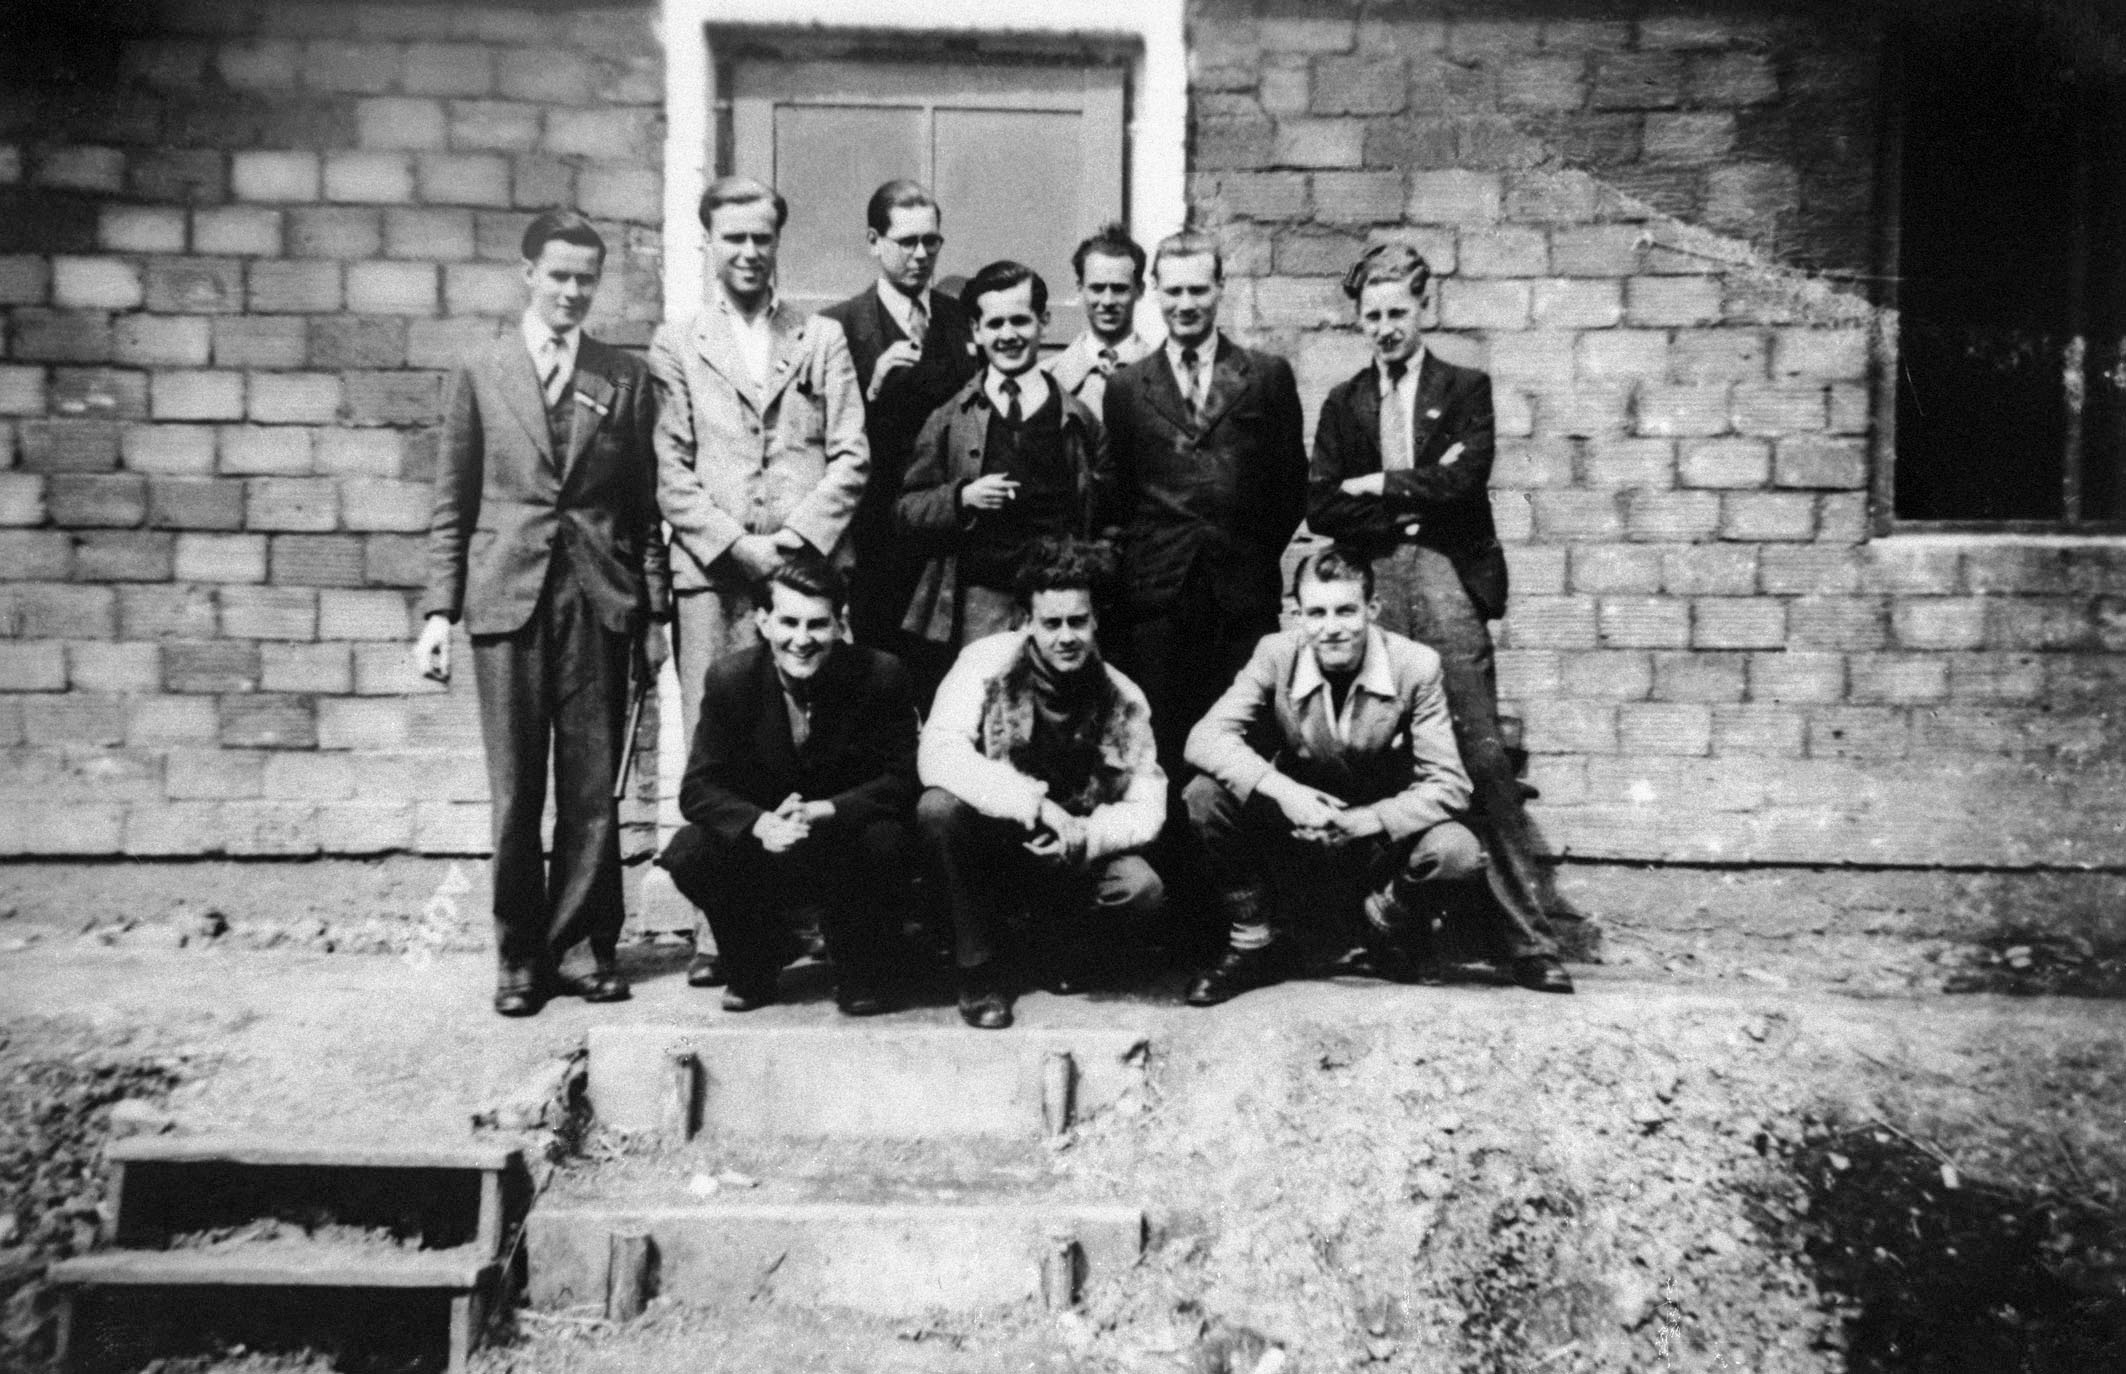 Dutch Students in front of their barrack hut at the workers' camp.